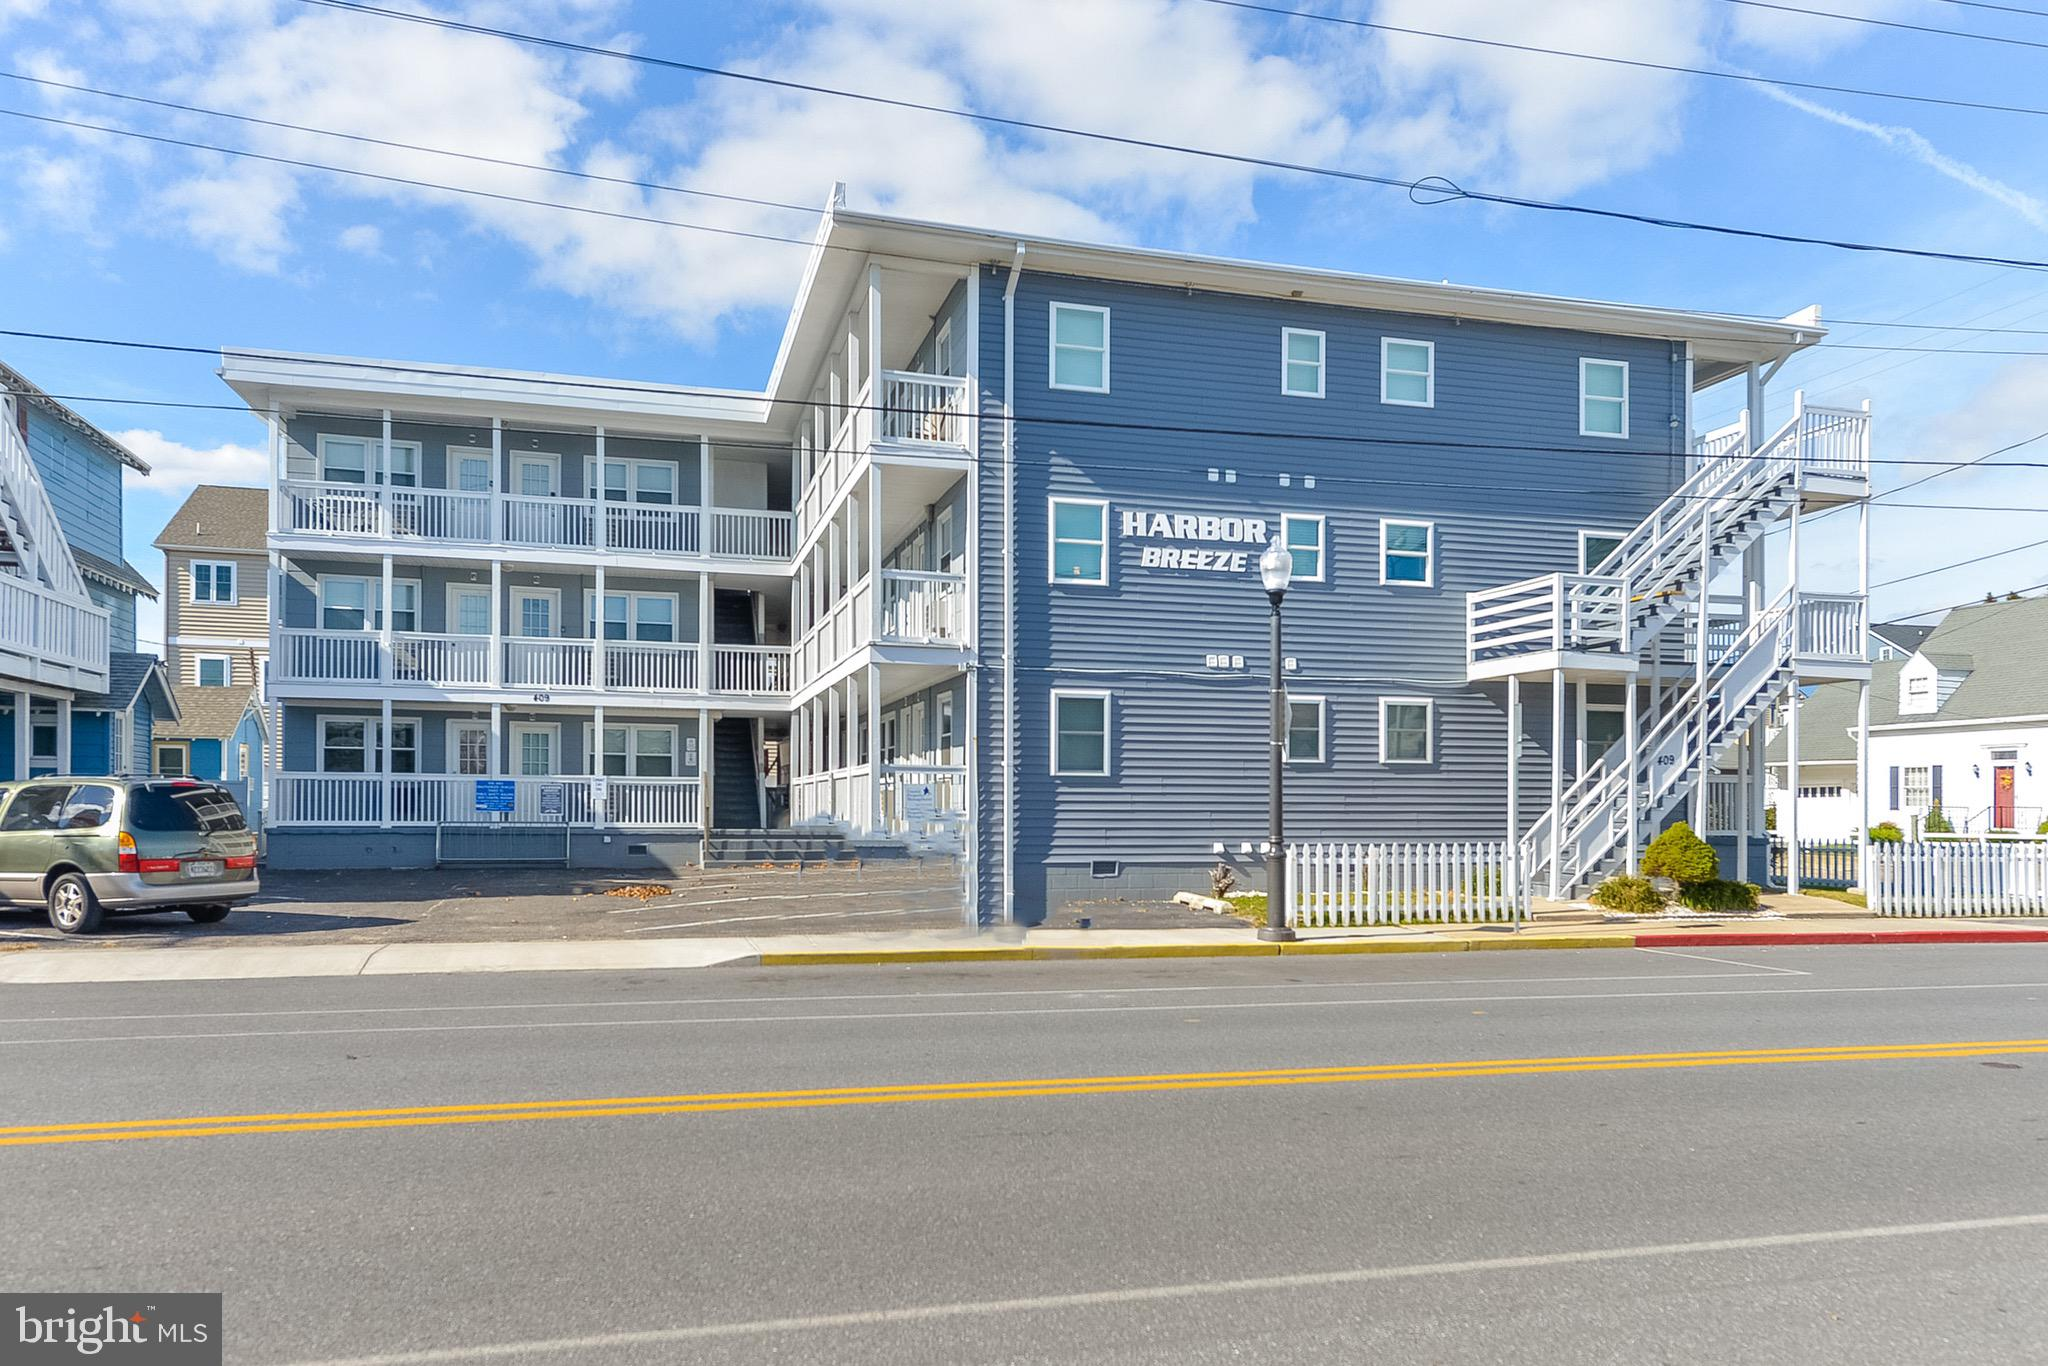 Highly sought after Prime Bayside Condo with Pool and Parking at 5TH Street and Saint Louis Ave, Excellent Rental Income, Top Floor South End Unit. Unit is in Excellent Condition, Washer and Dryer Hookup in the Unit, Just a Few Blocks to the Beach and Boardwalk. Walk to Lazy Lizard and MR Ducks, Come down and check this place out.  This place will not last Long. Lets Go!